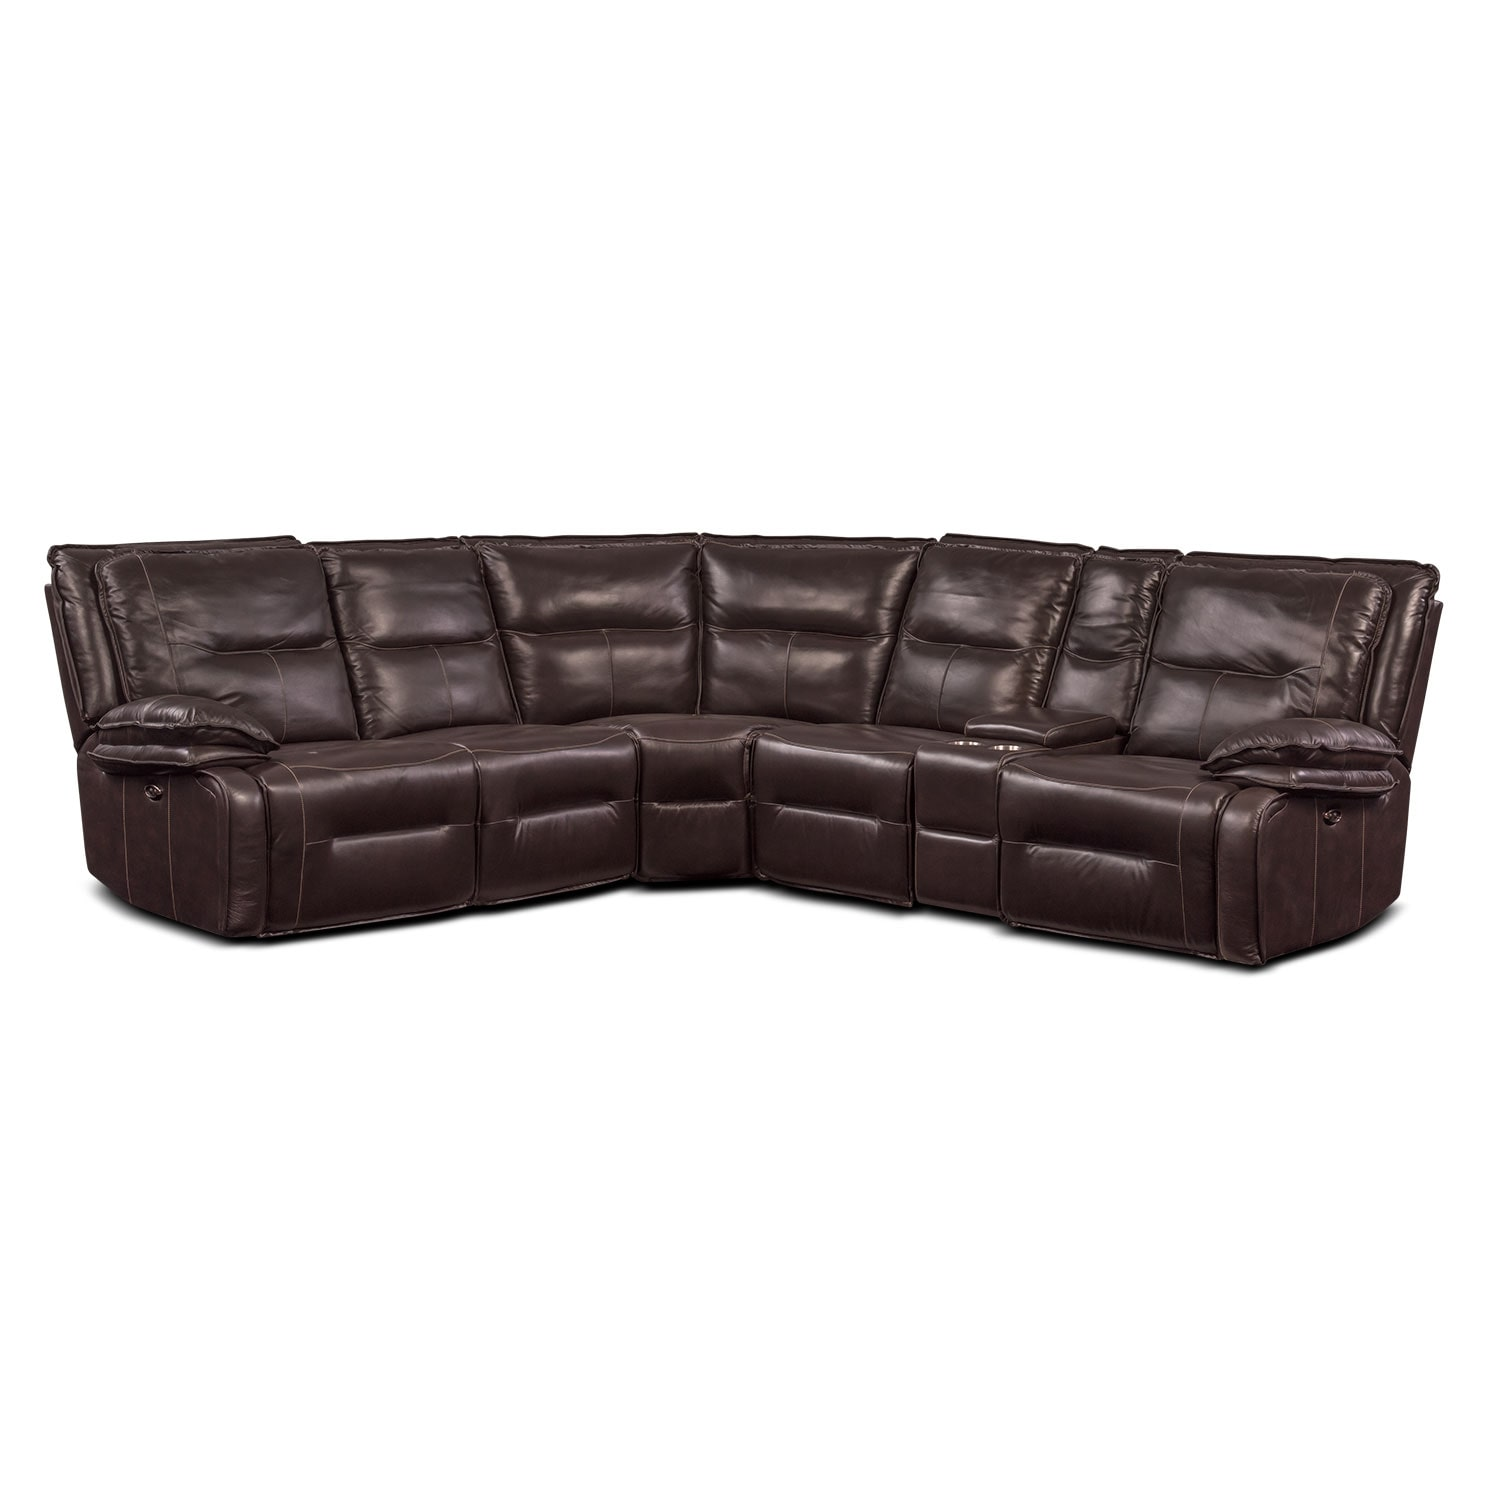 Nikki 6-Piece Power Reclining Sectional with 3 Recliners - Brown